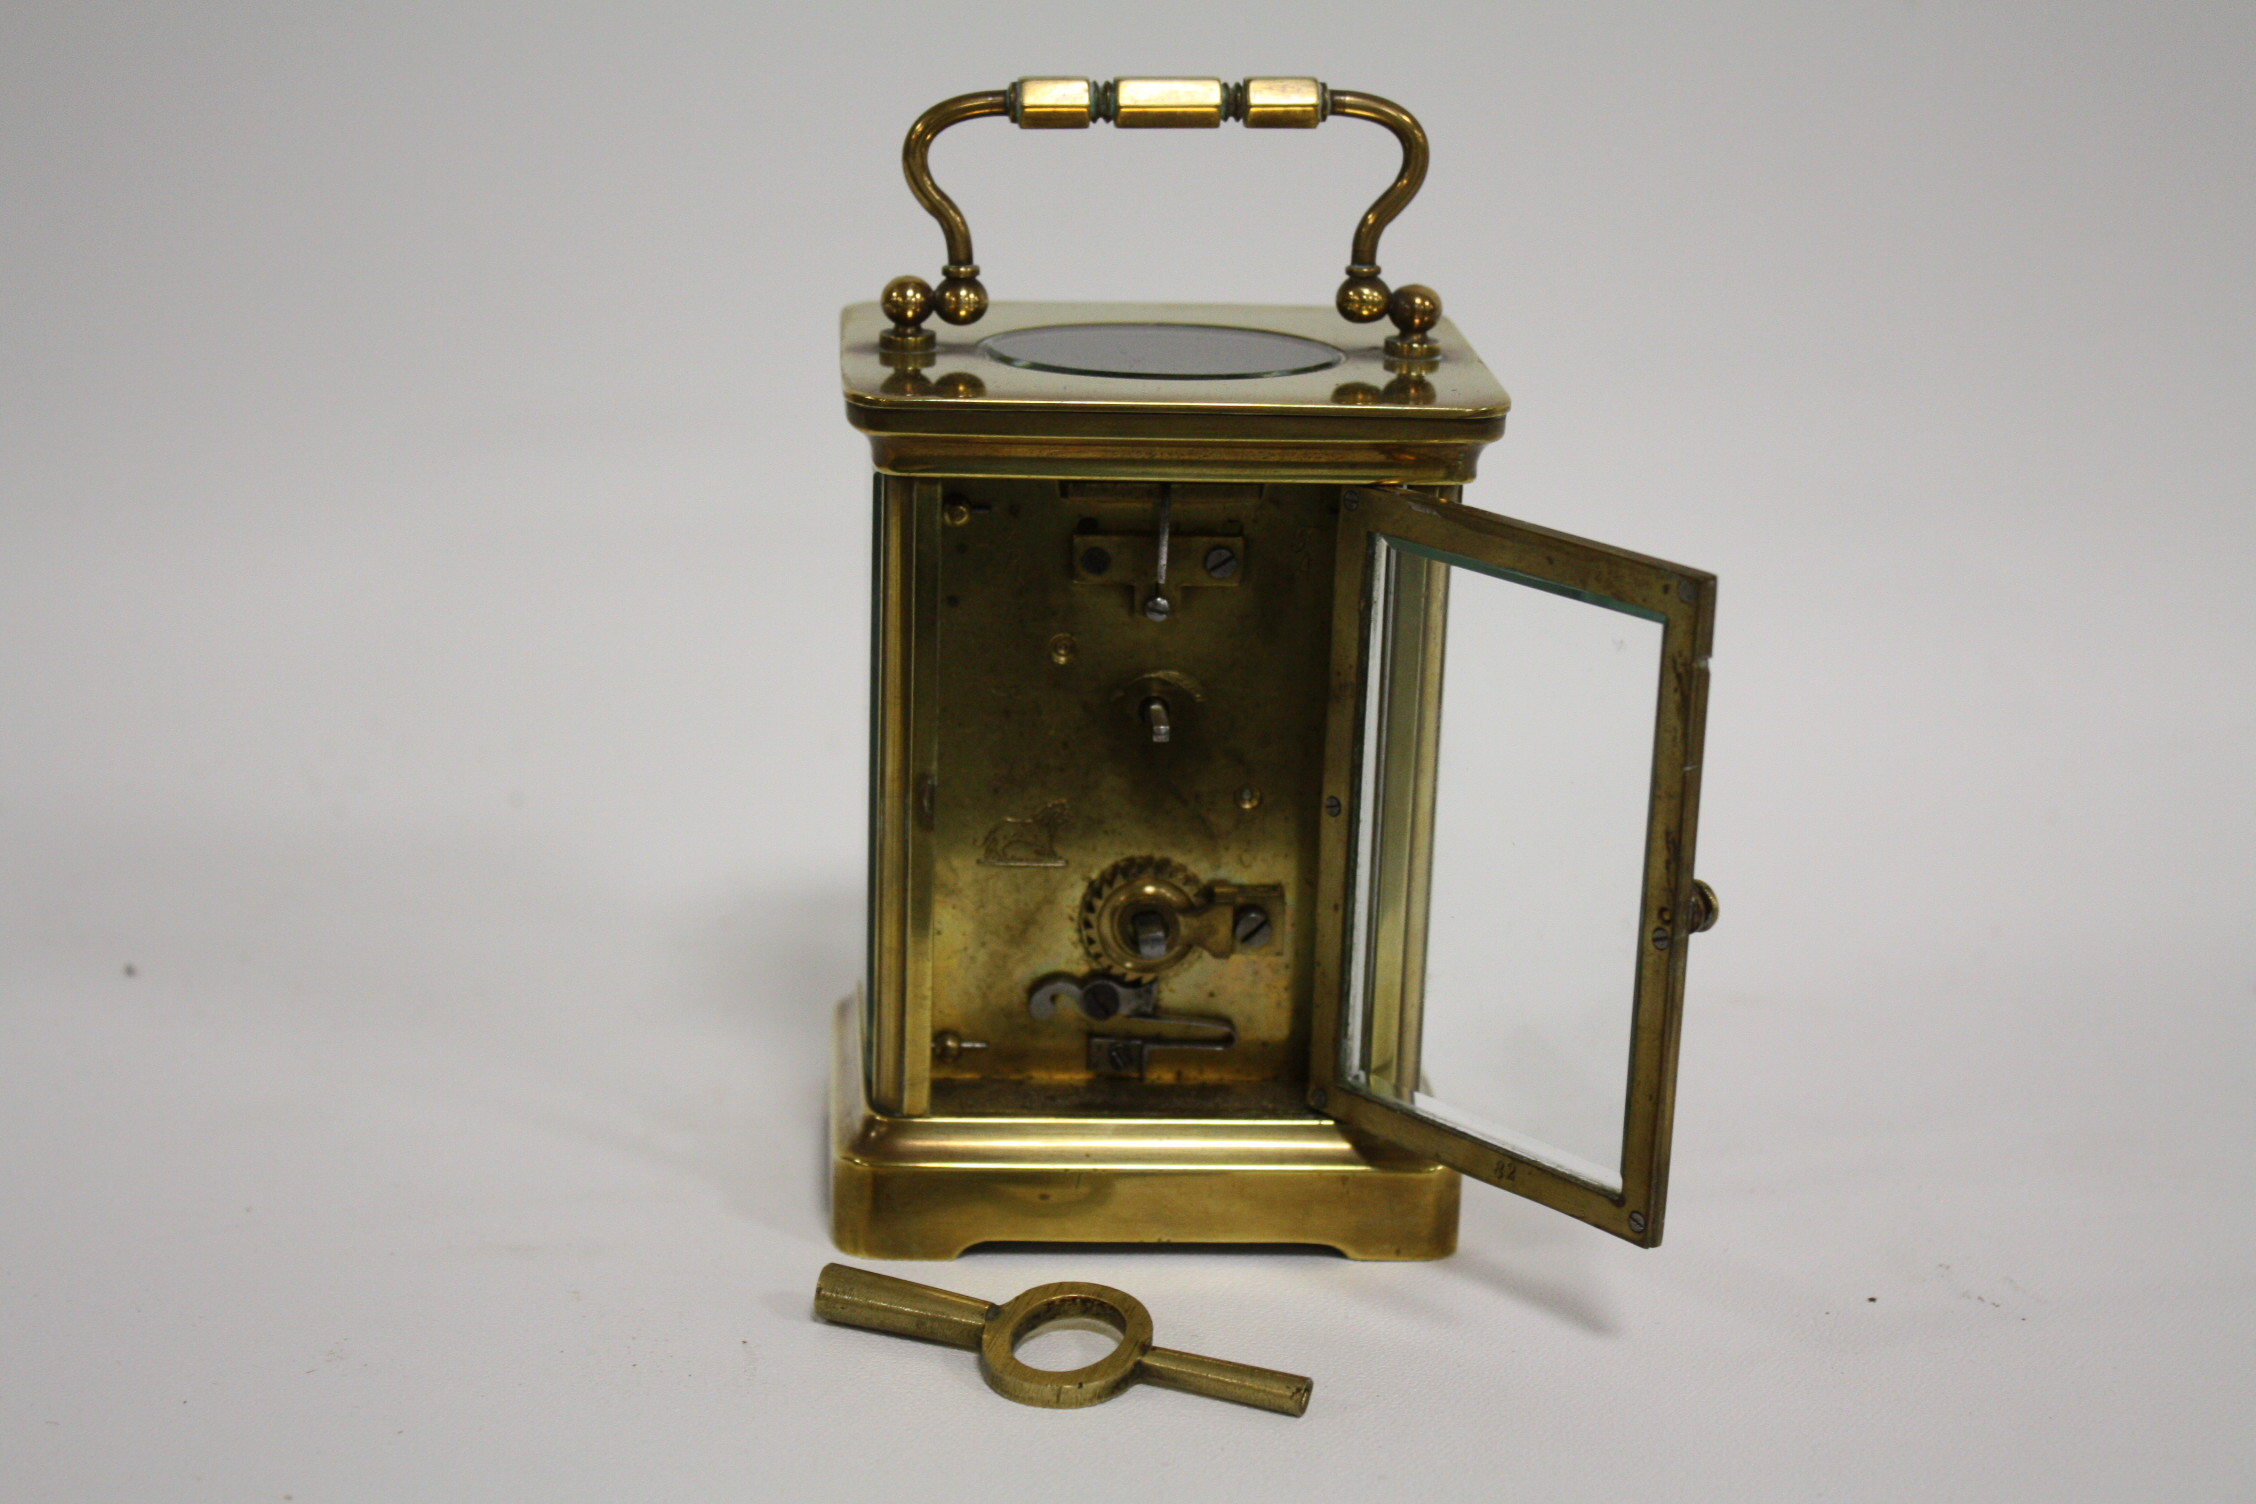 Lot 630 - A SMALL BRASS CASED DUVERDREY & BLOQUEL CARRIAGE CLOCK, the enamel dial with Roman numerals, the